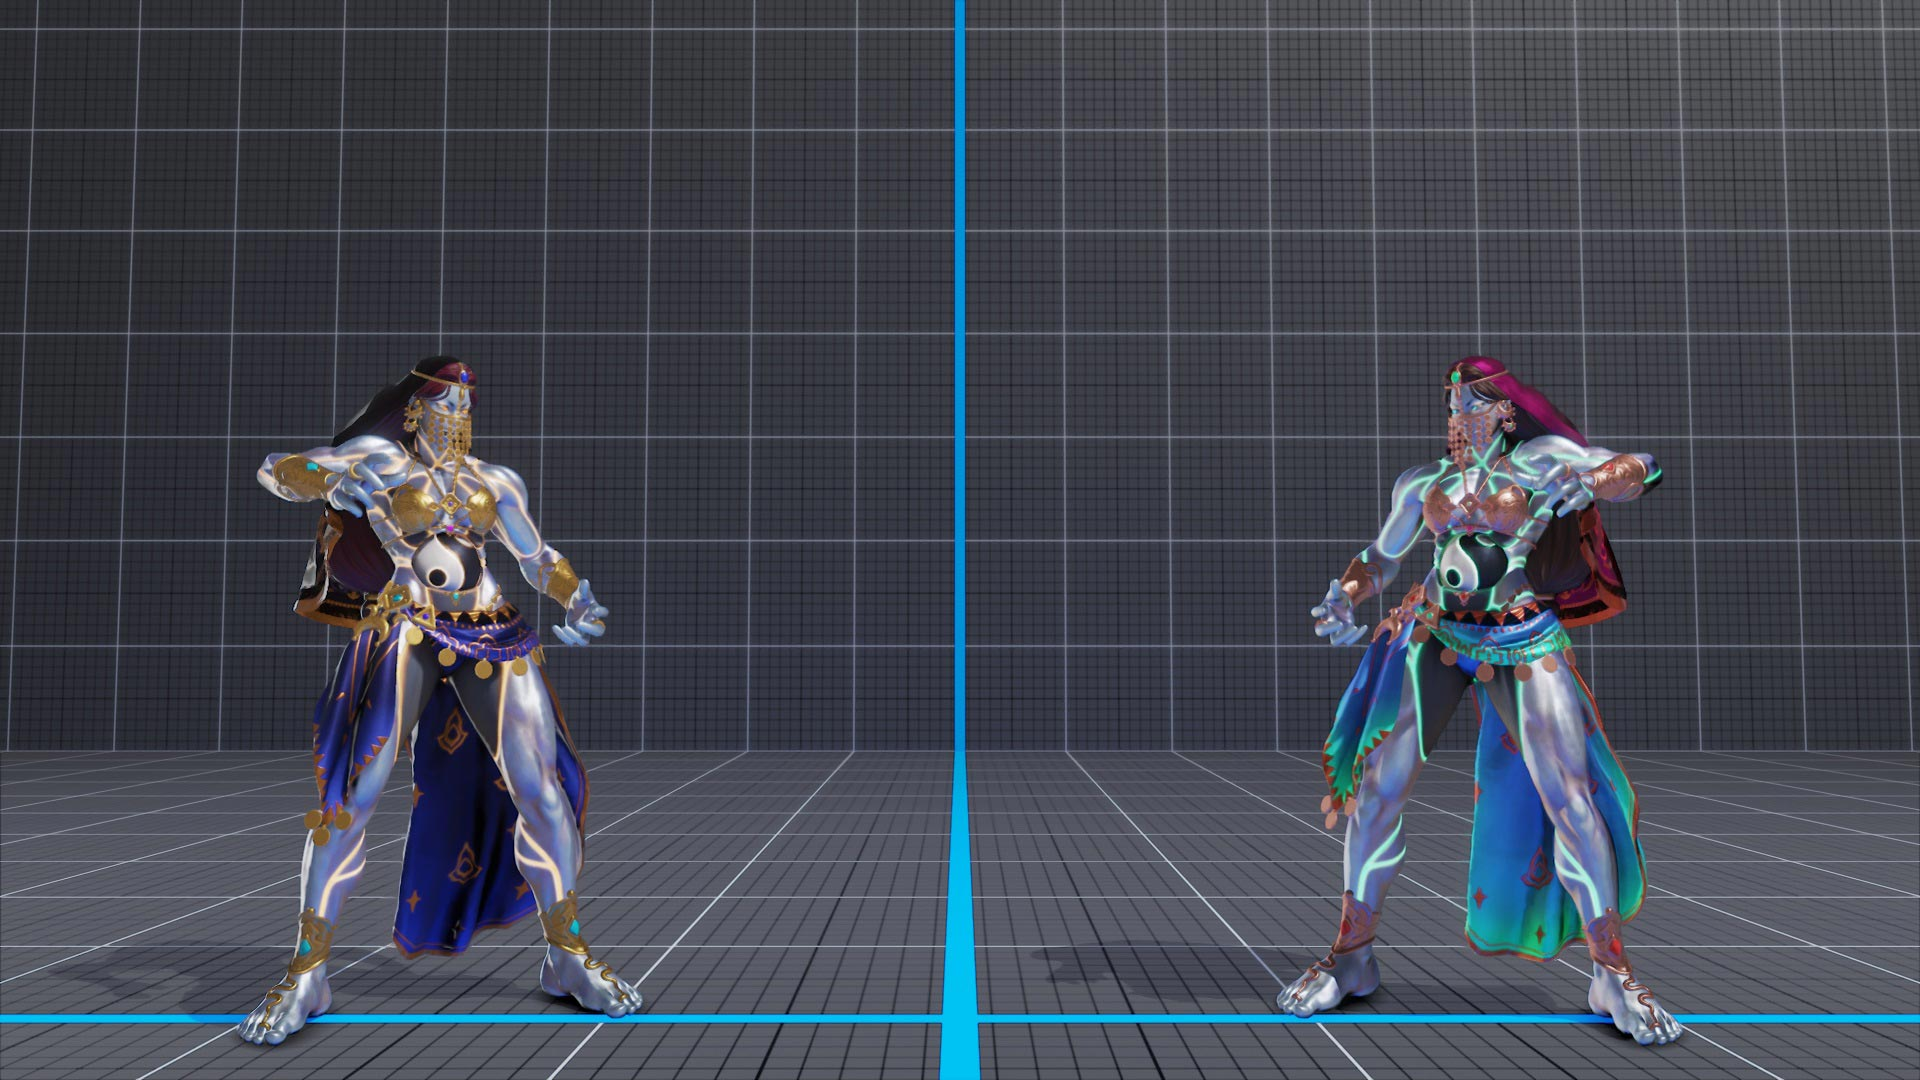 Seth new CPT costume colors 2 out of 5 image gallery